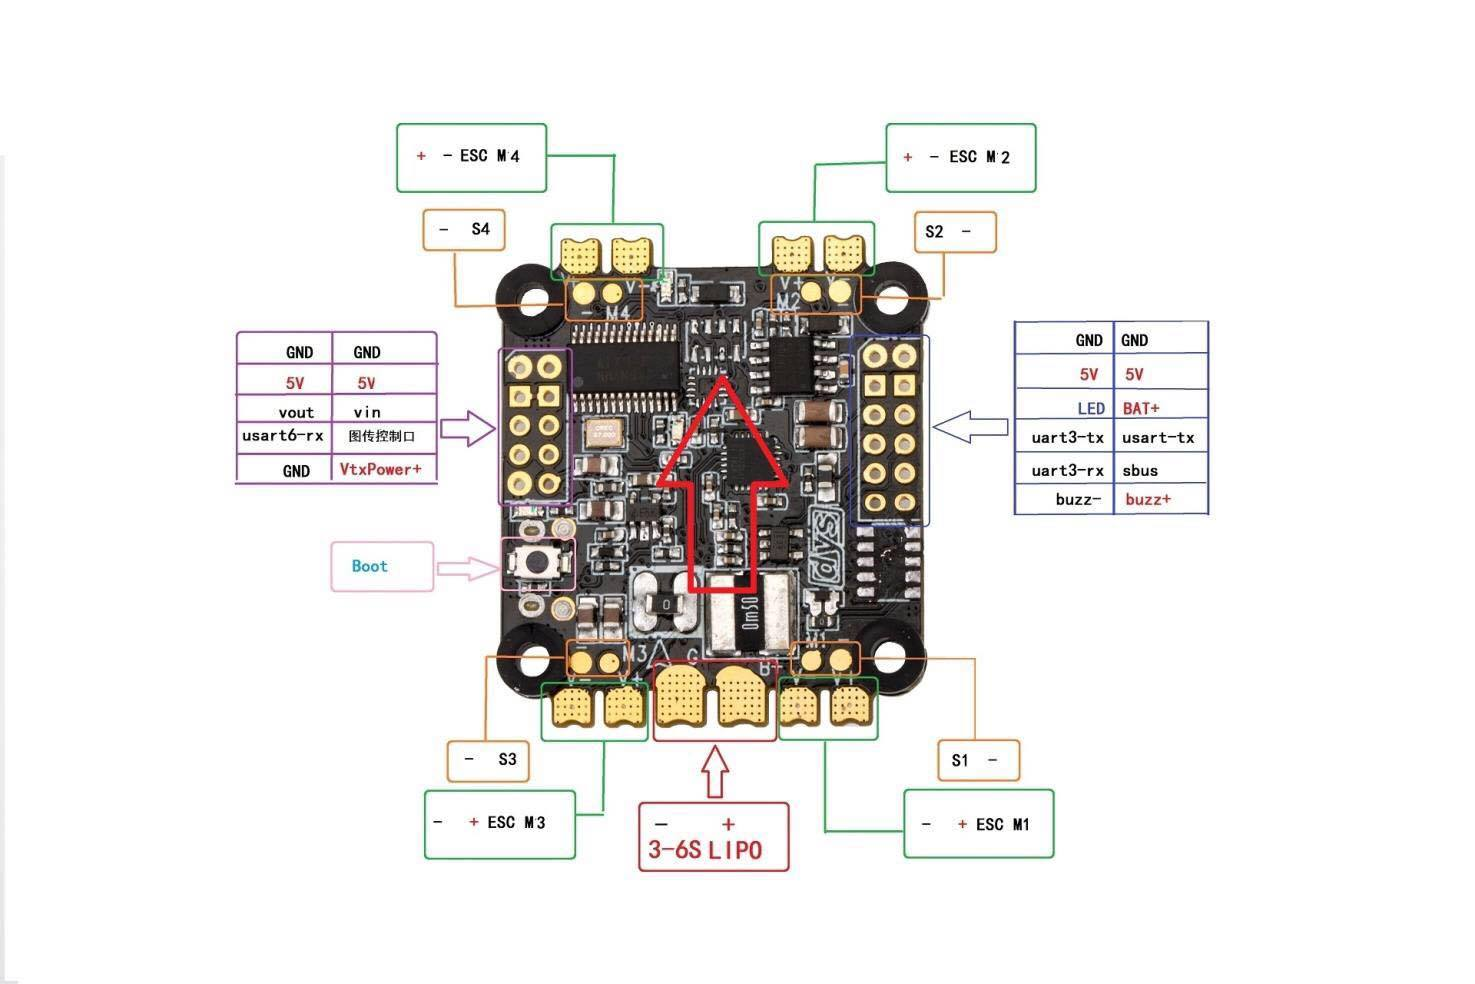 Lumenier Esc Wiring Diagrams Free Download Bec For Rc Car Diagram Dys F4 Fc F30a And F20a 4in1